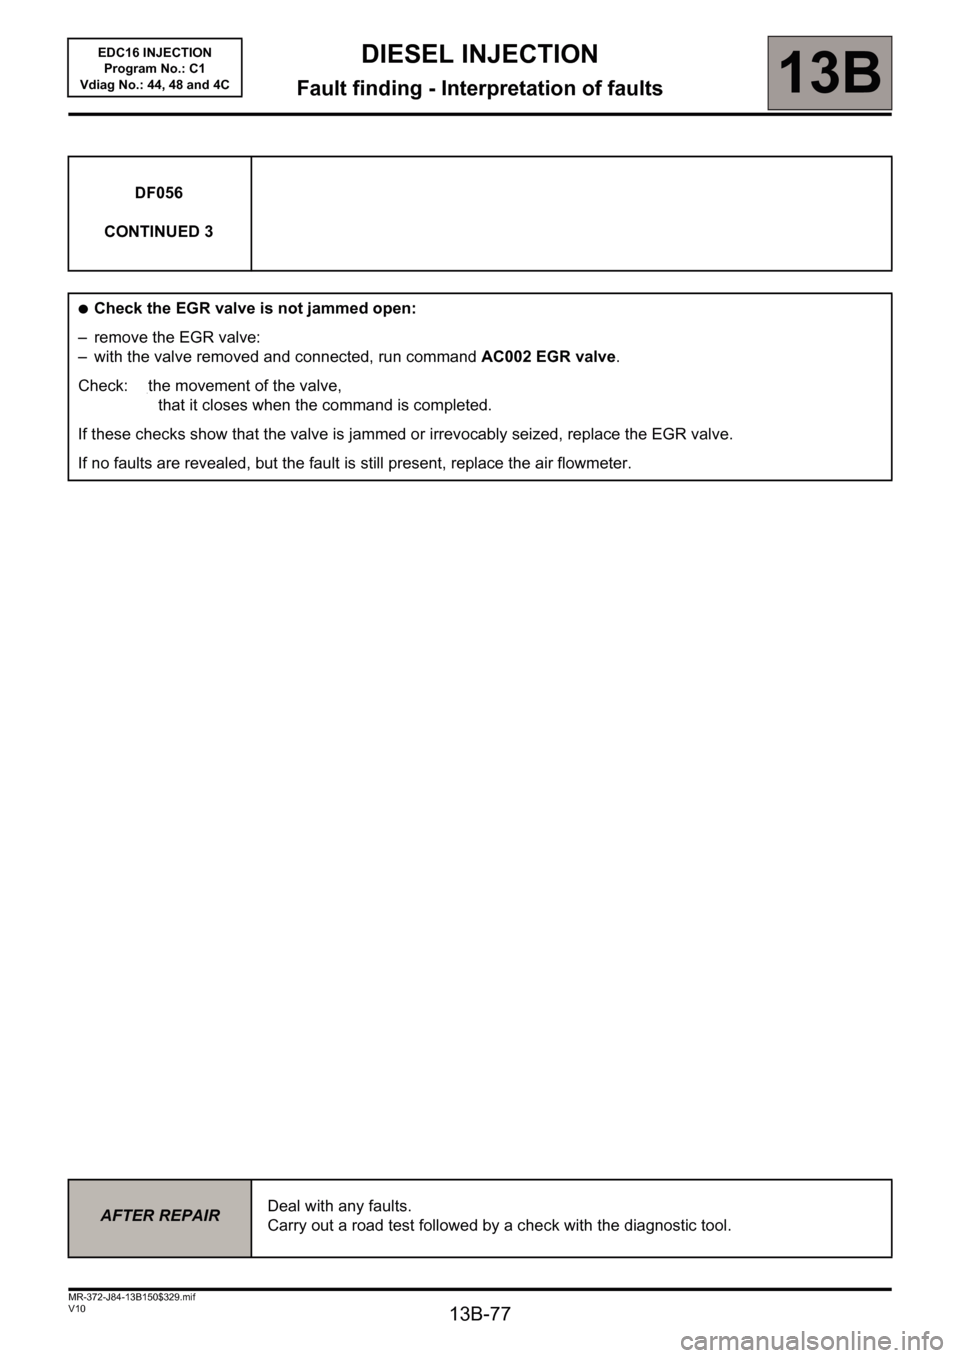 RENAULT SCENIC 2011 J95 / 3.G Engine And Peripherals EDC16 Injection Workshop Manual, Page 77